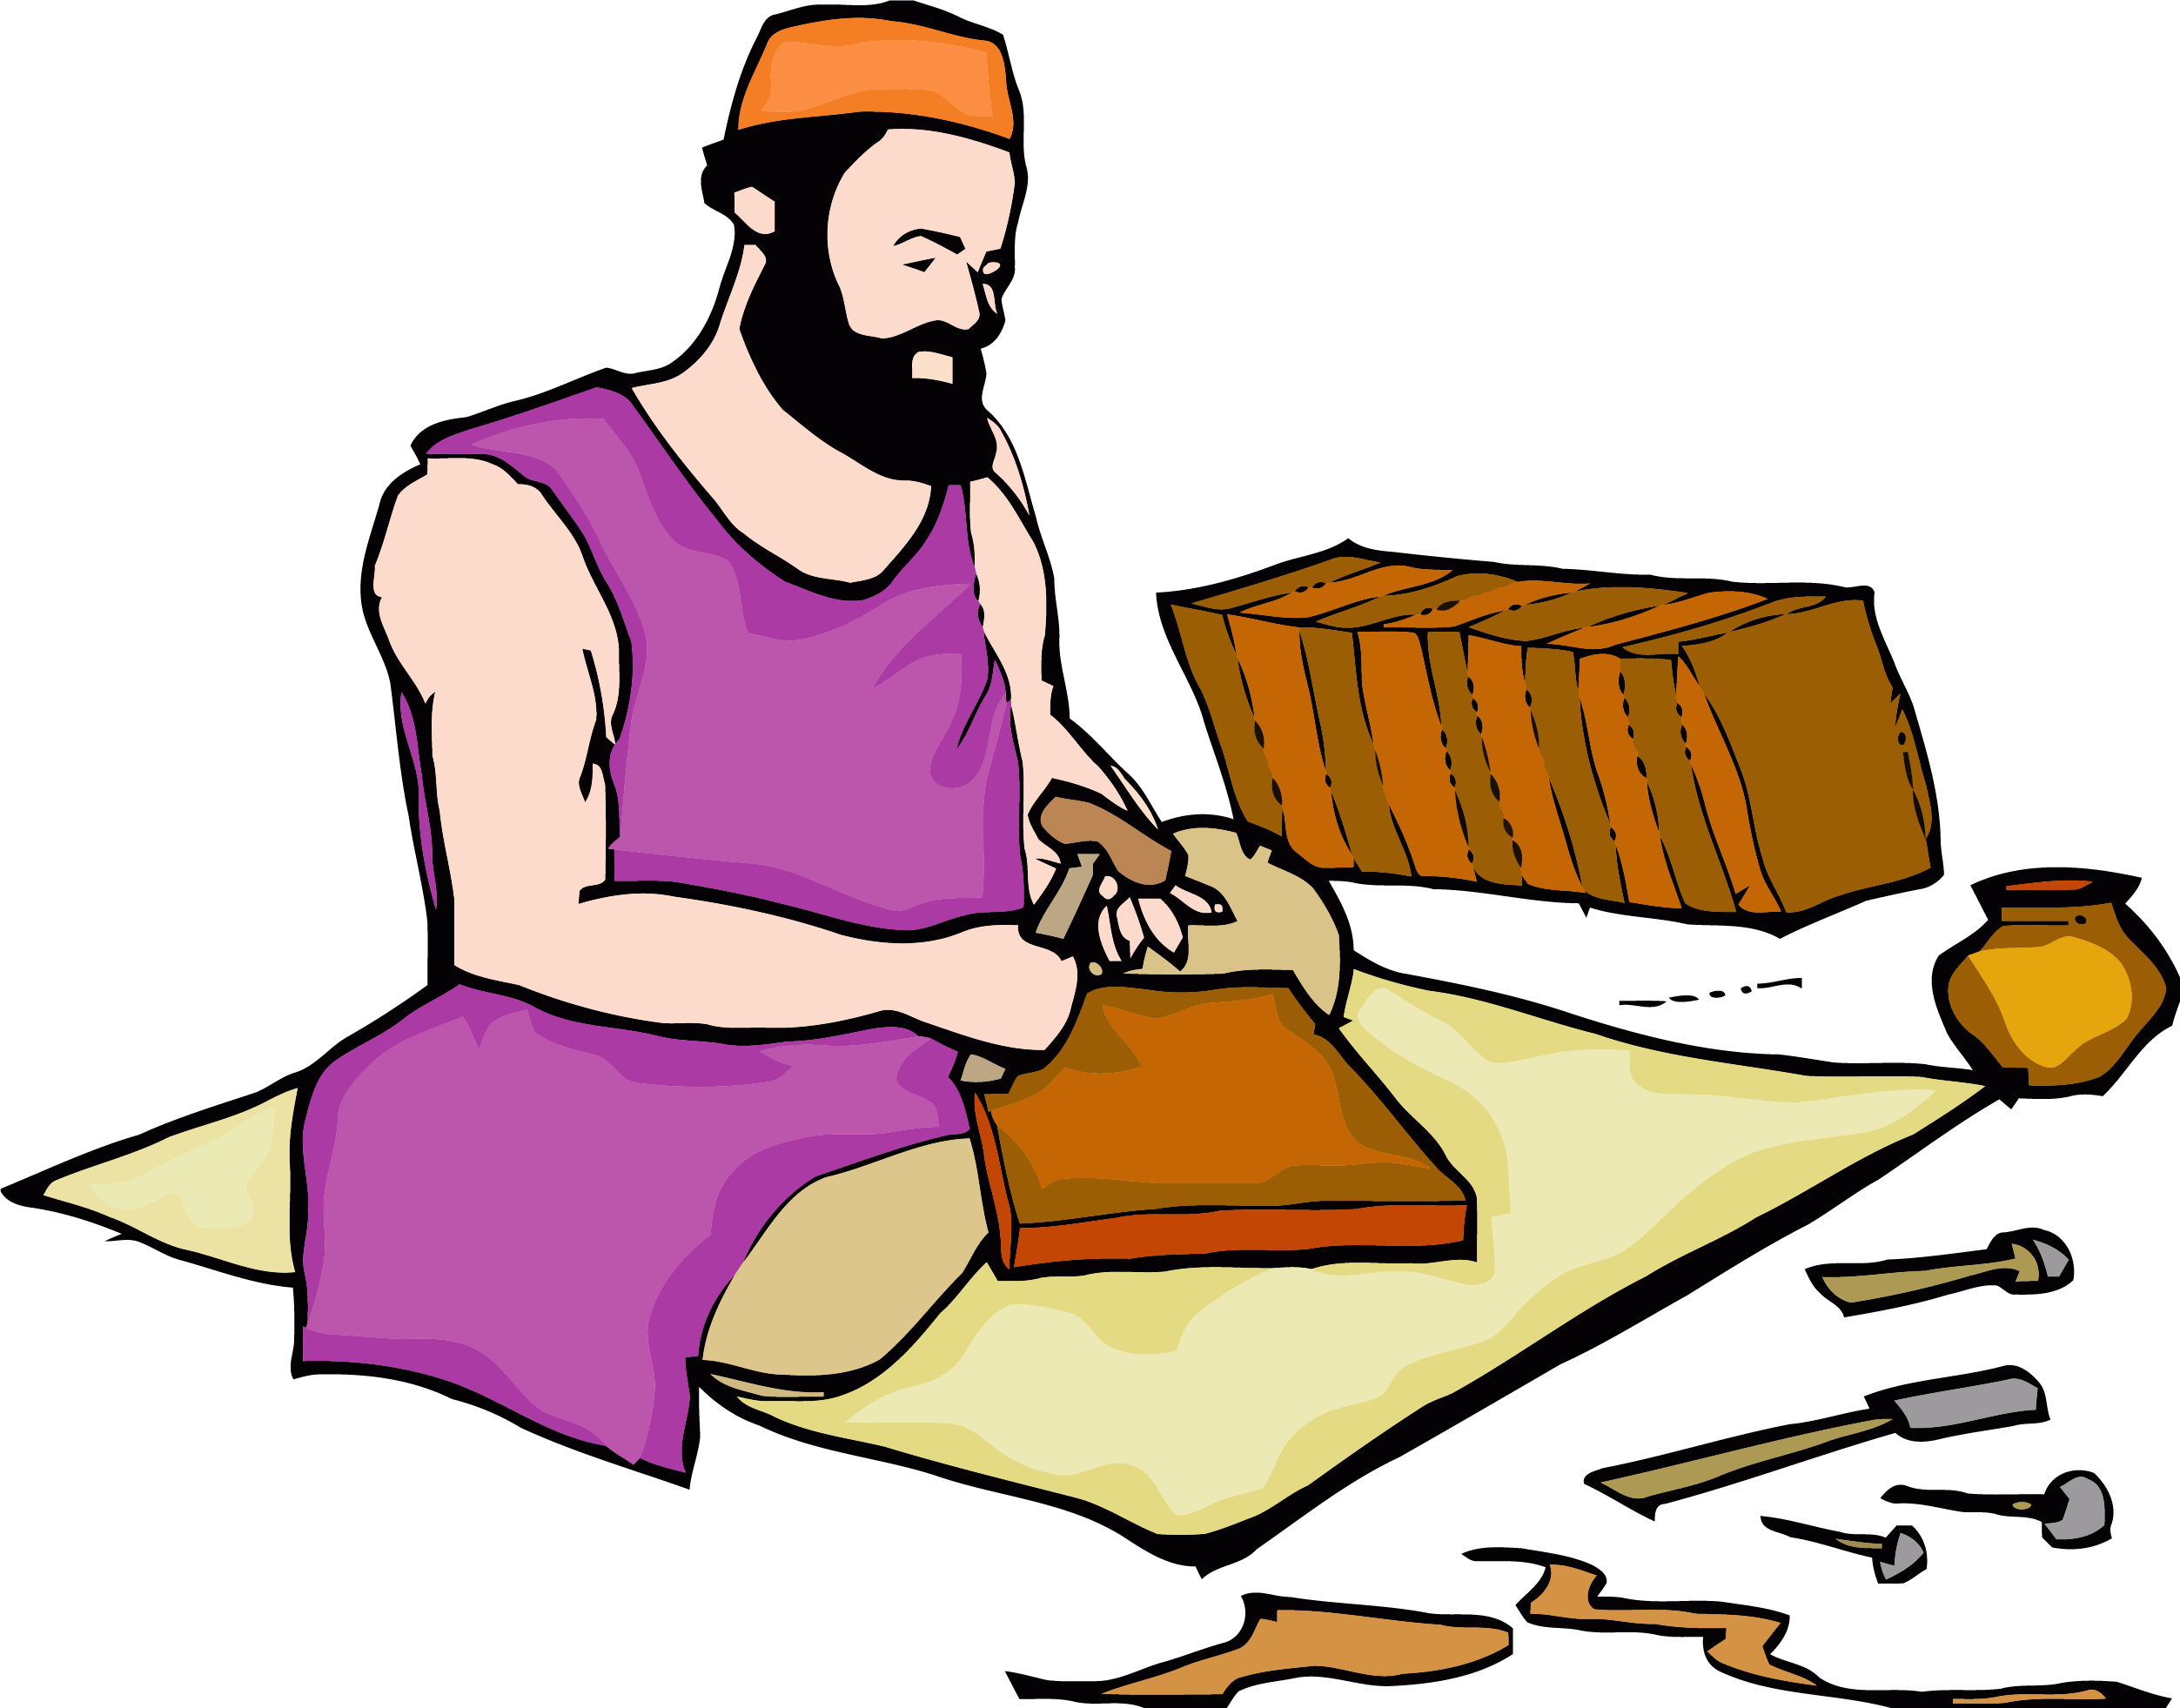 Old png clipartlyclipartly. Lady clipart carpenter